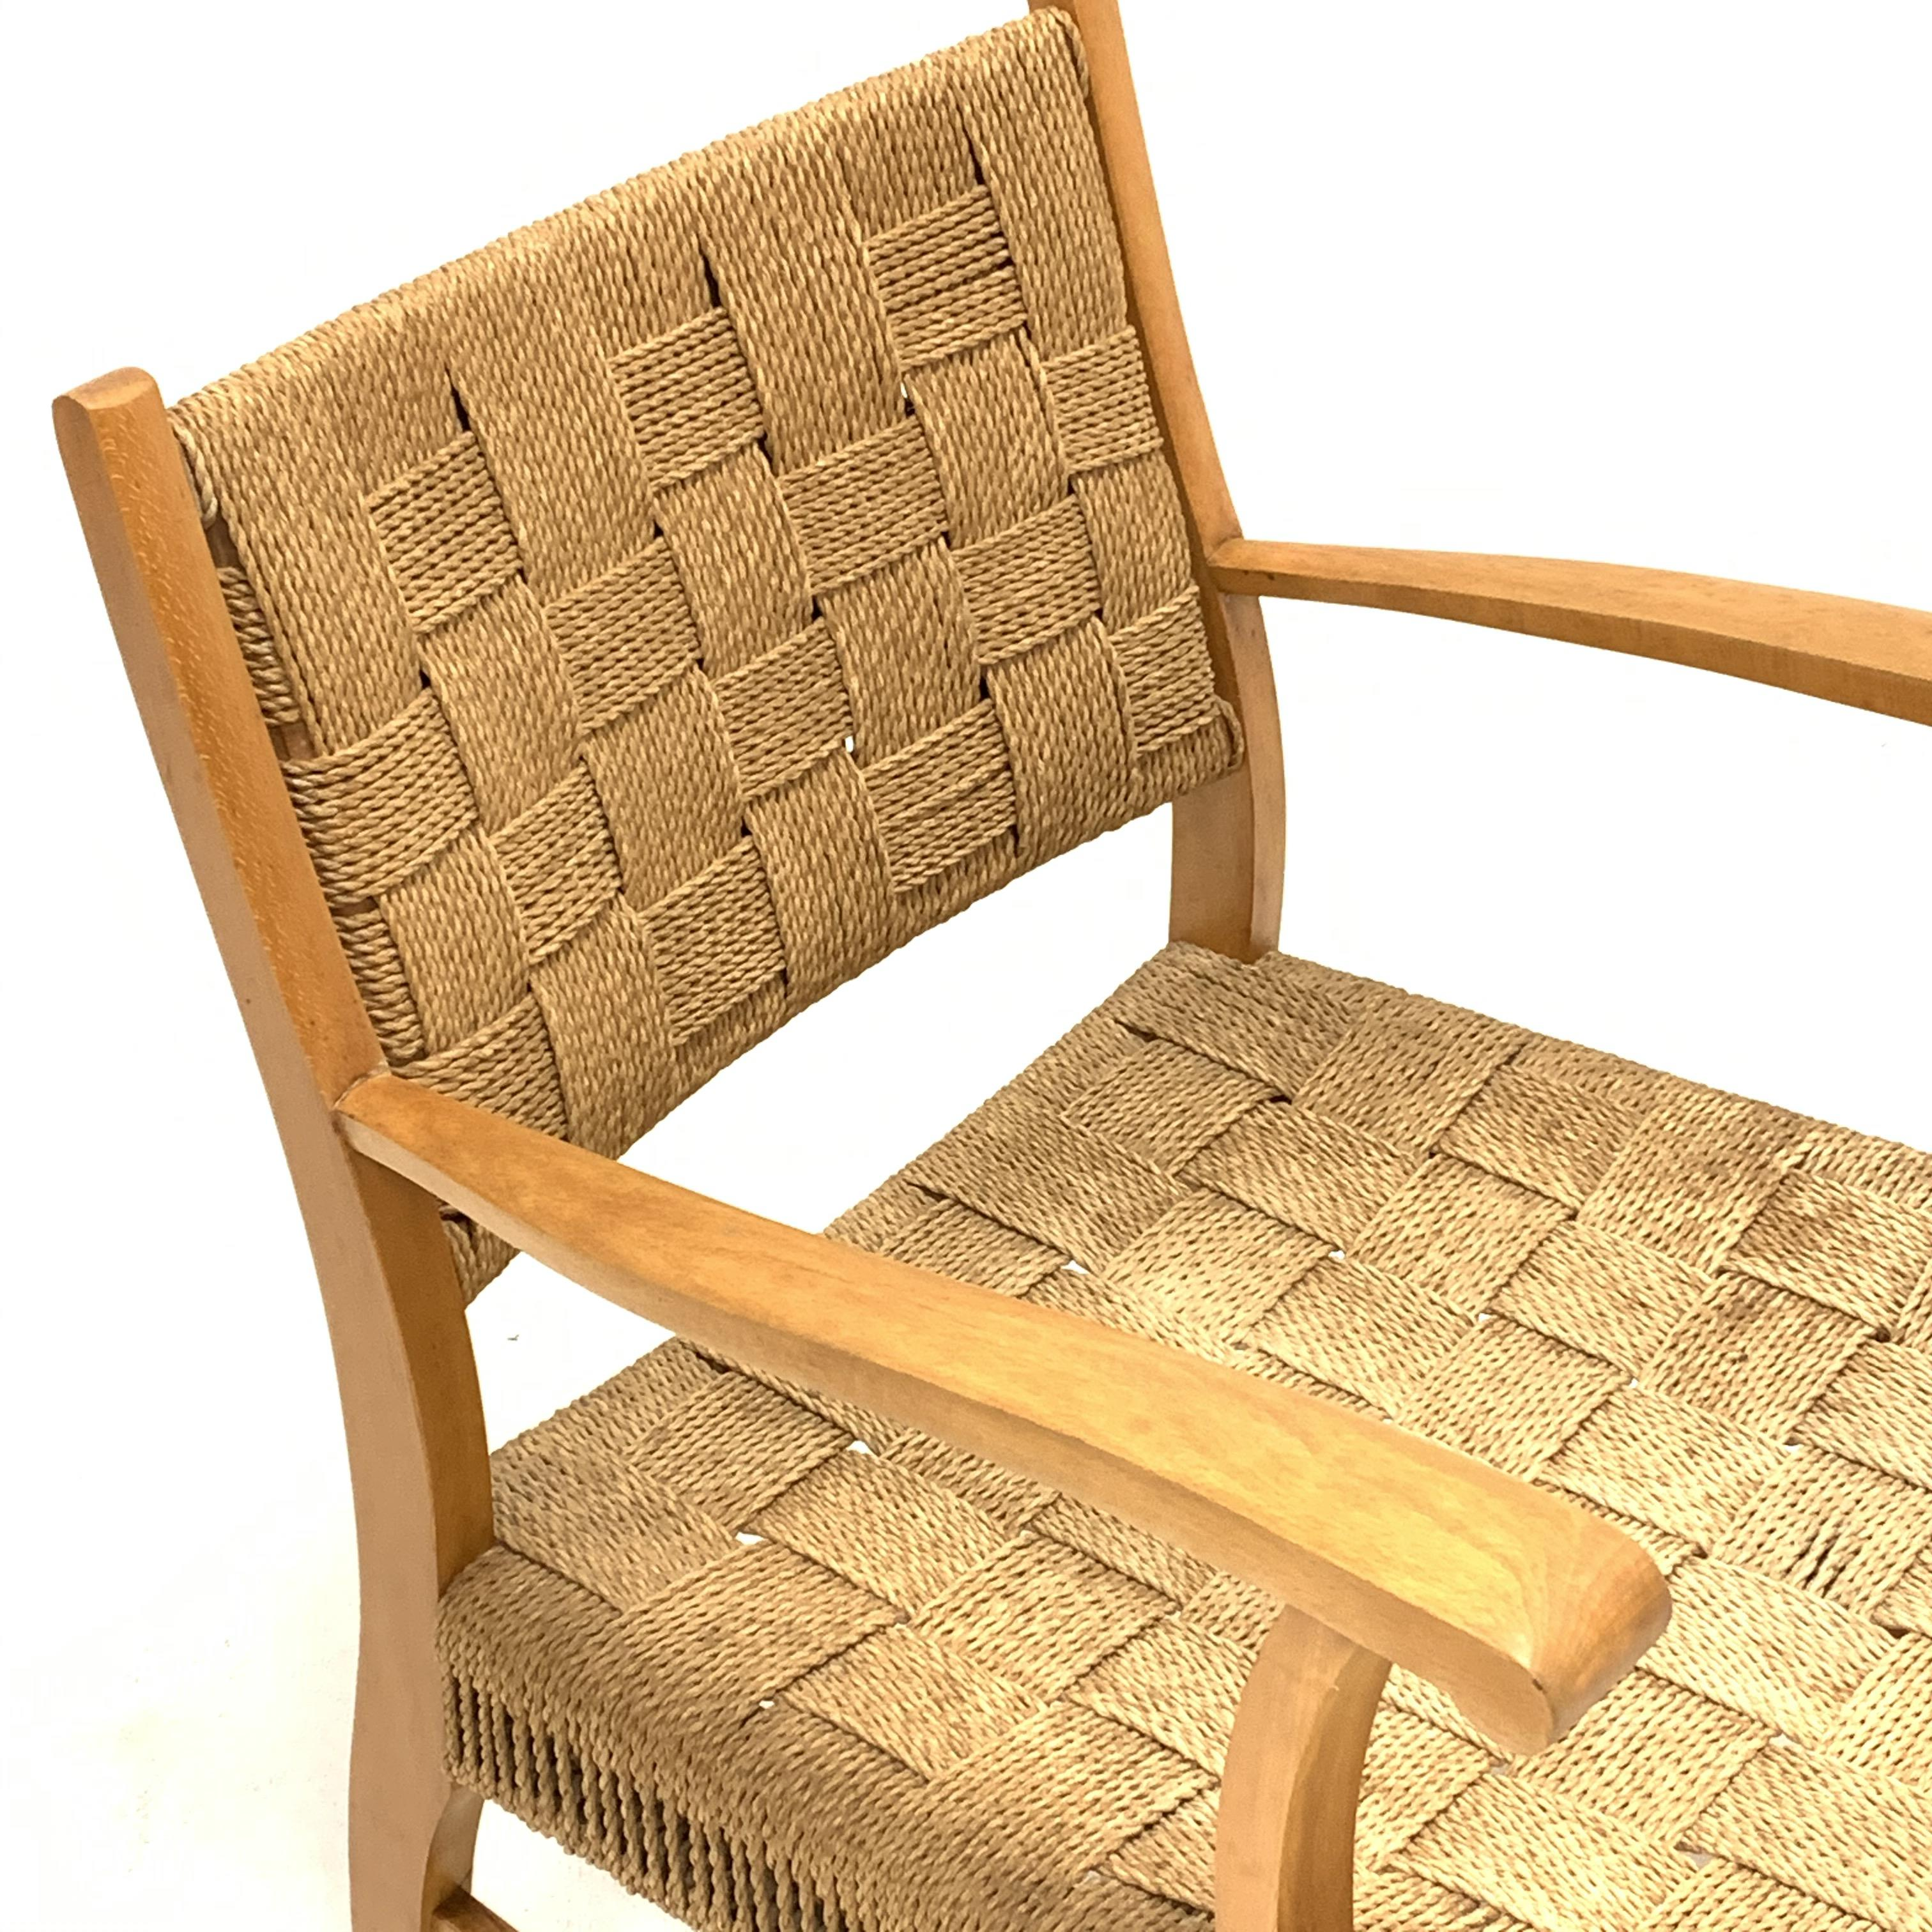 Attributed to Frits Schlegel - Danish beech and cord lounge chair, circa. 1940s, W60cm - Image 2 of 5